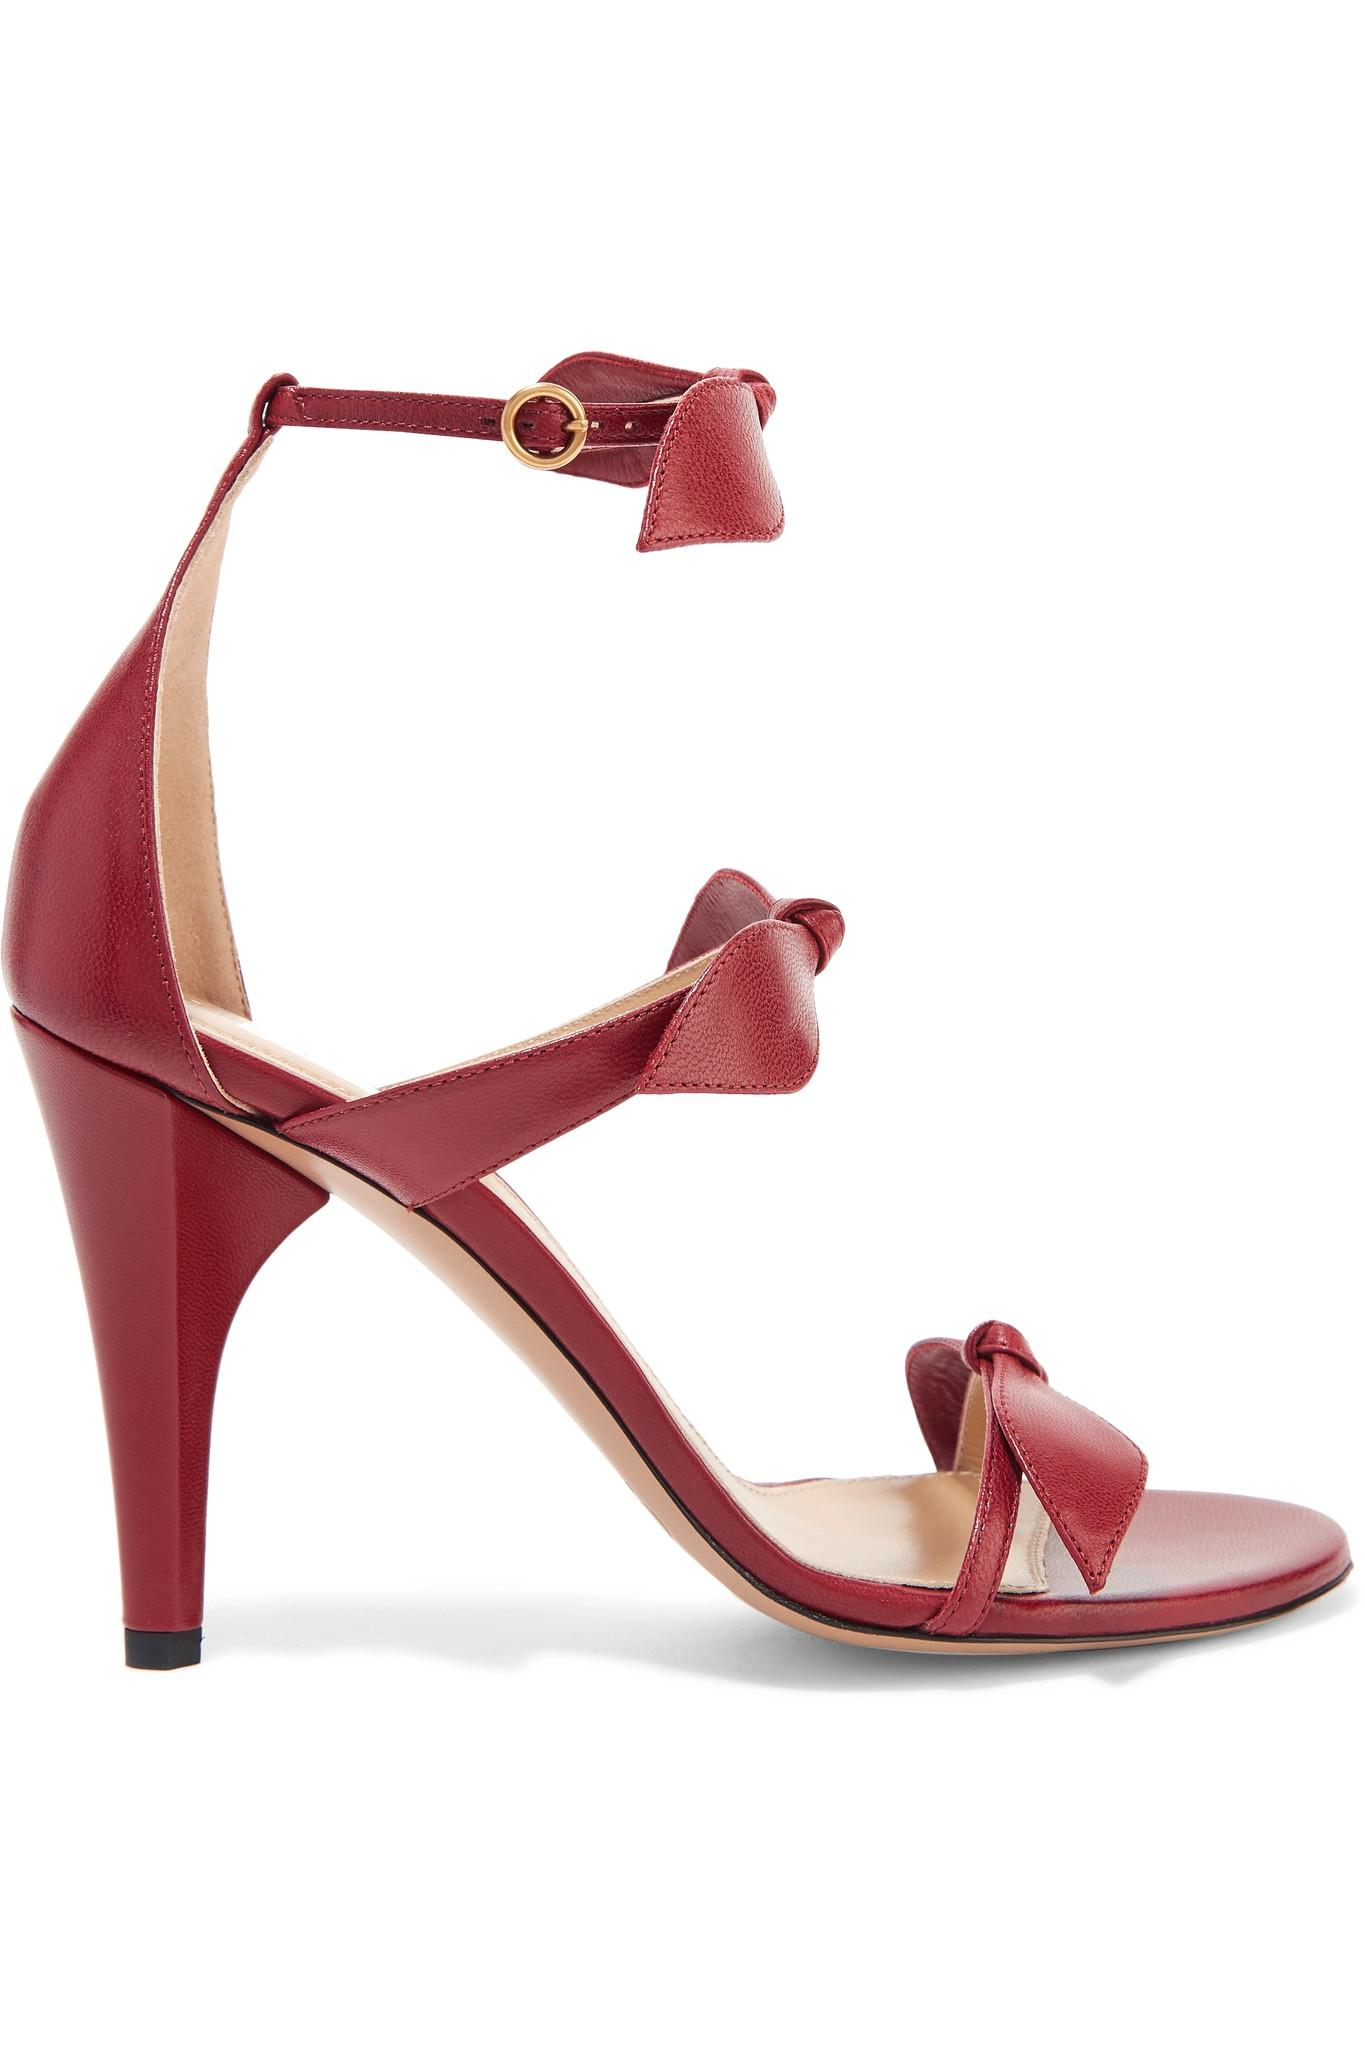 Le Meilleur Lyst Chloé Bow Embellished Leather Sandals Ce Mois Ci